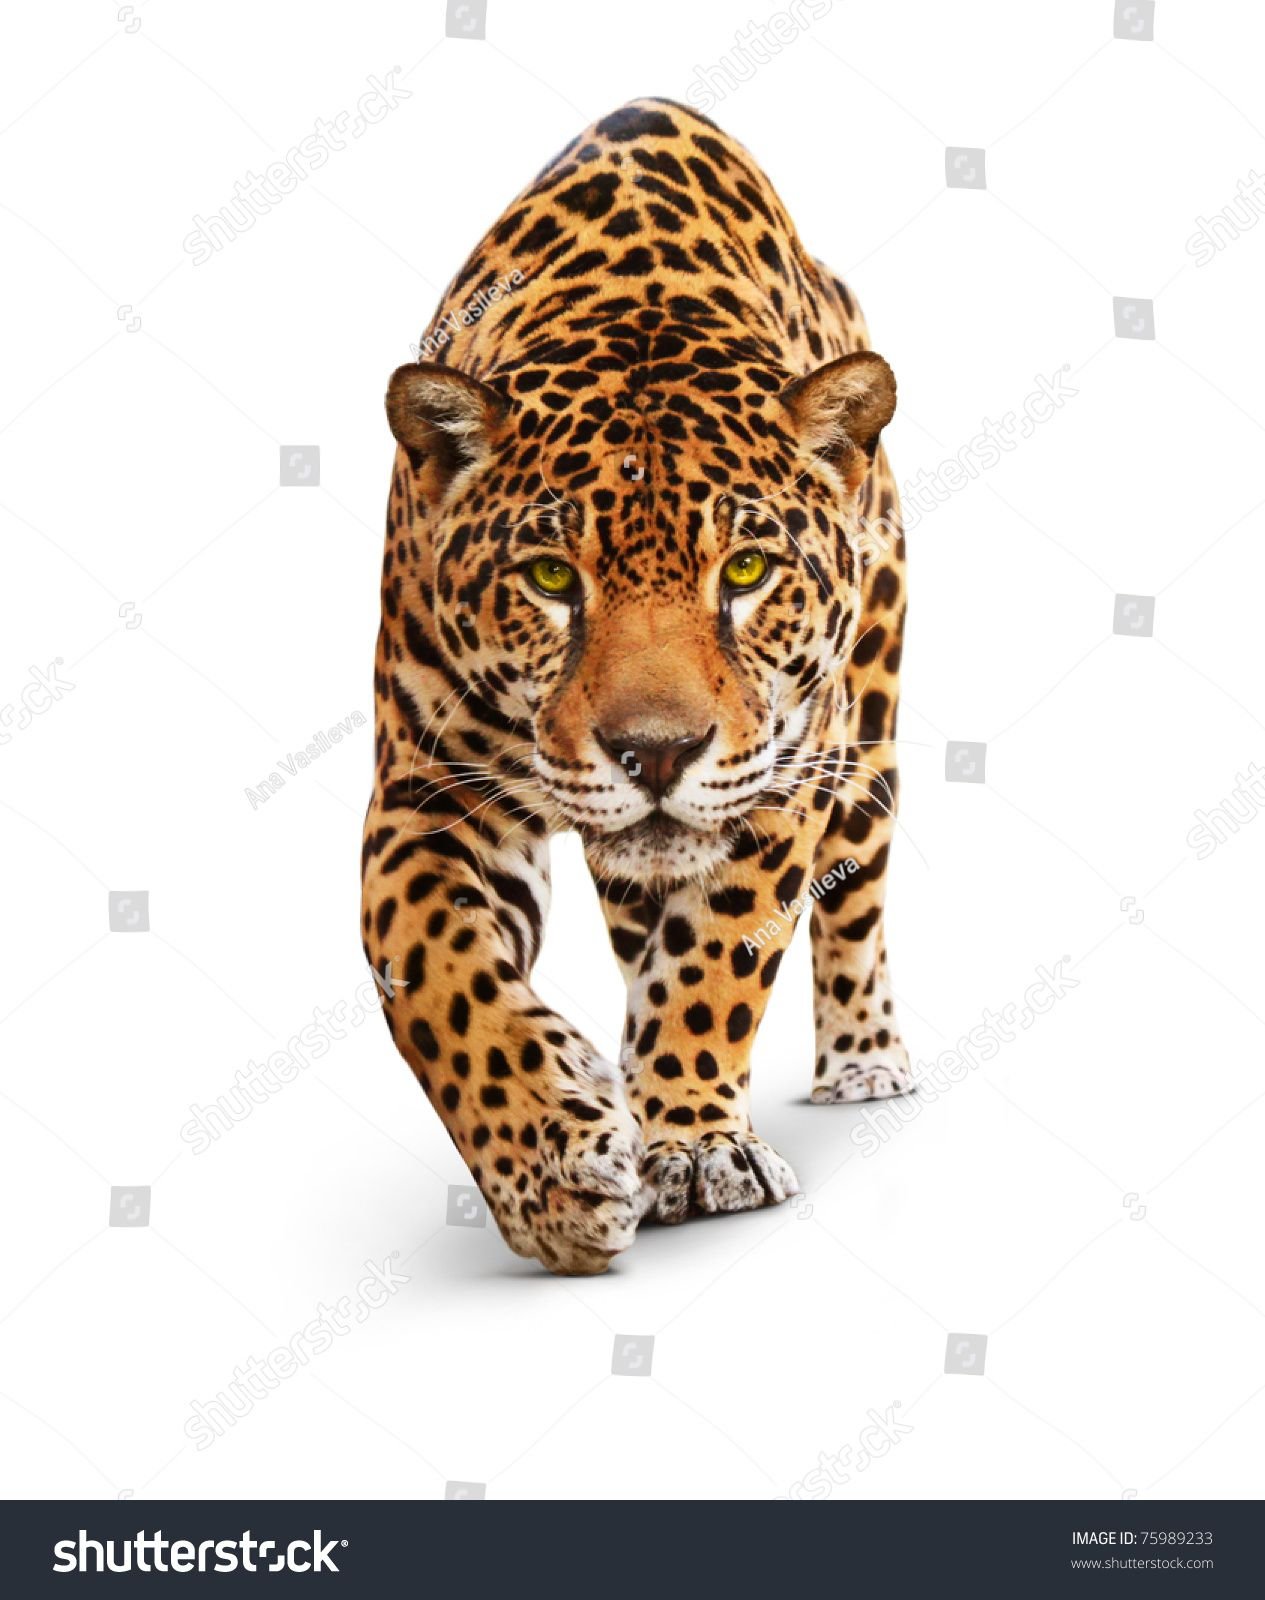 Jaguar Panther Front View Isolated On White Shadow The Same